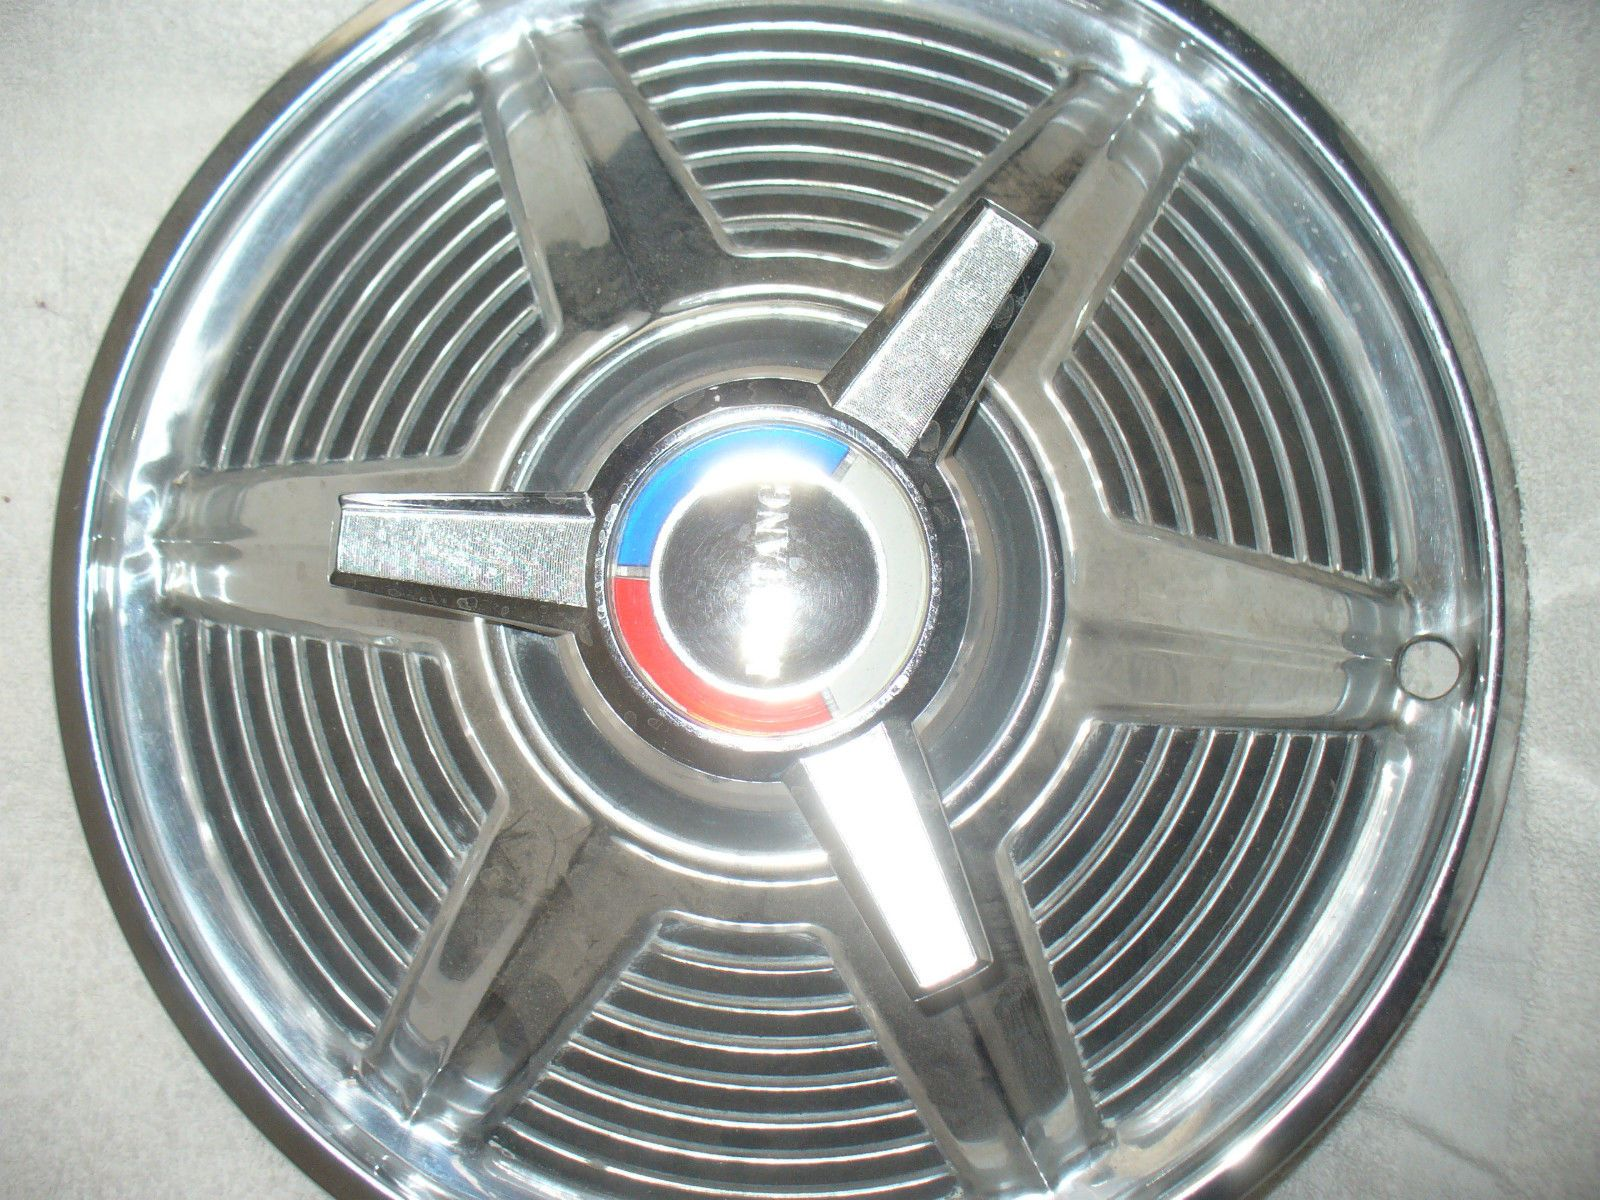 1963 ford galaxie parts ebay - Mustang 1965 Ford Mustang Spinner Hubcap Nos 13 Ebay